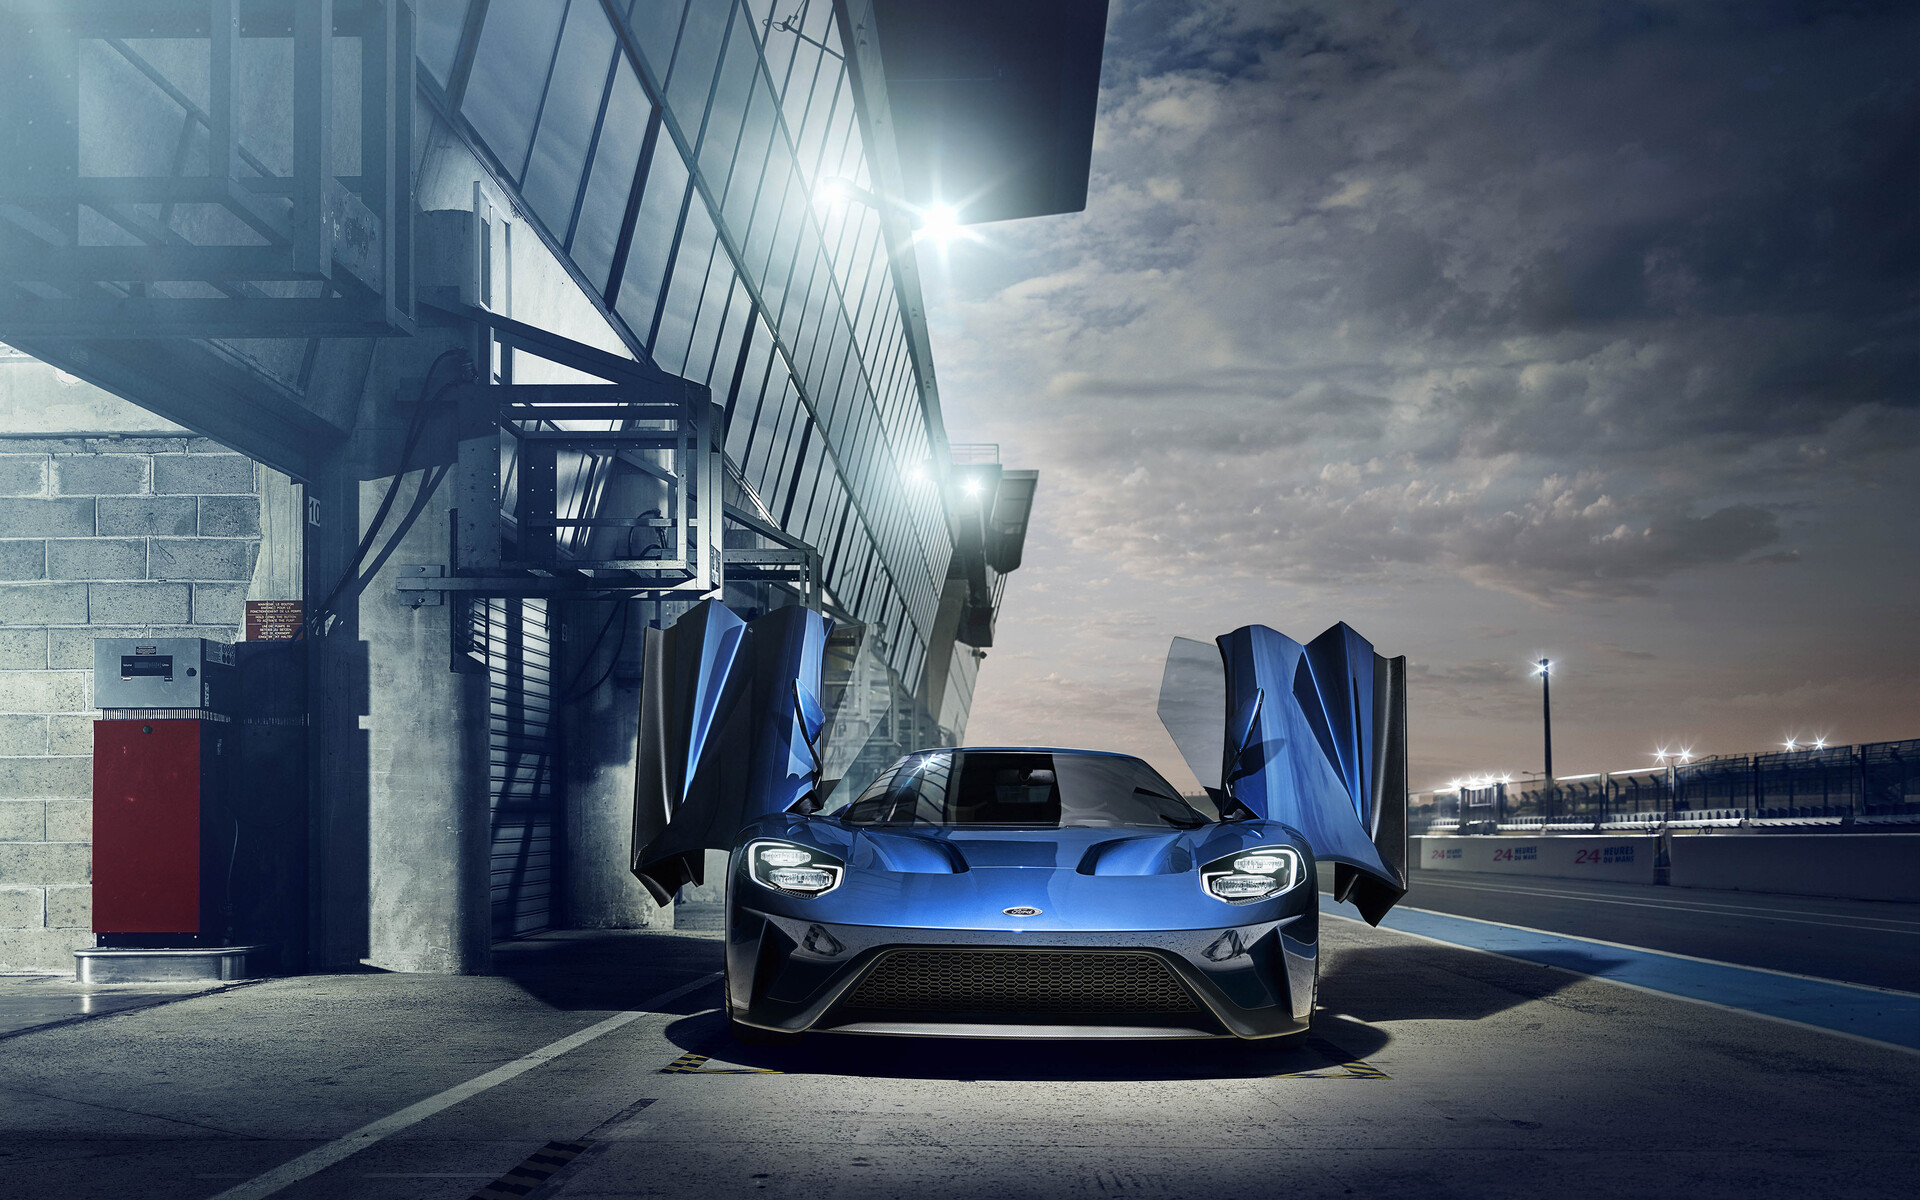 ford-gt-doors-open-up-id.jpg